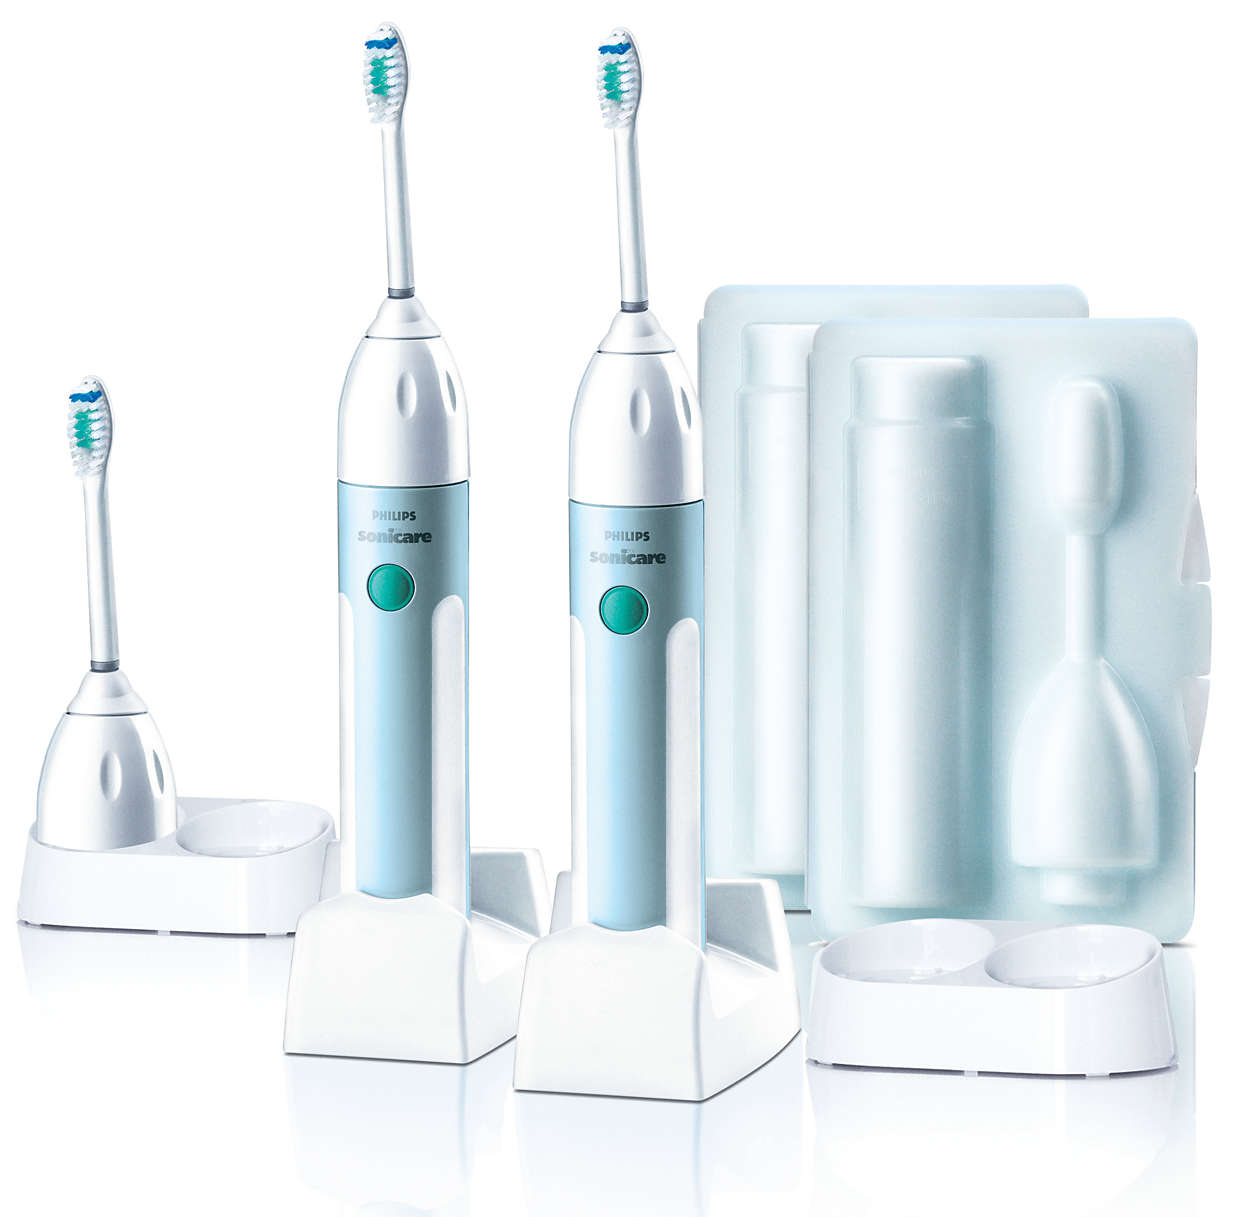 Image Result For Philips Sonicare Essence Toothbrush